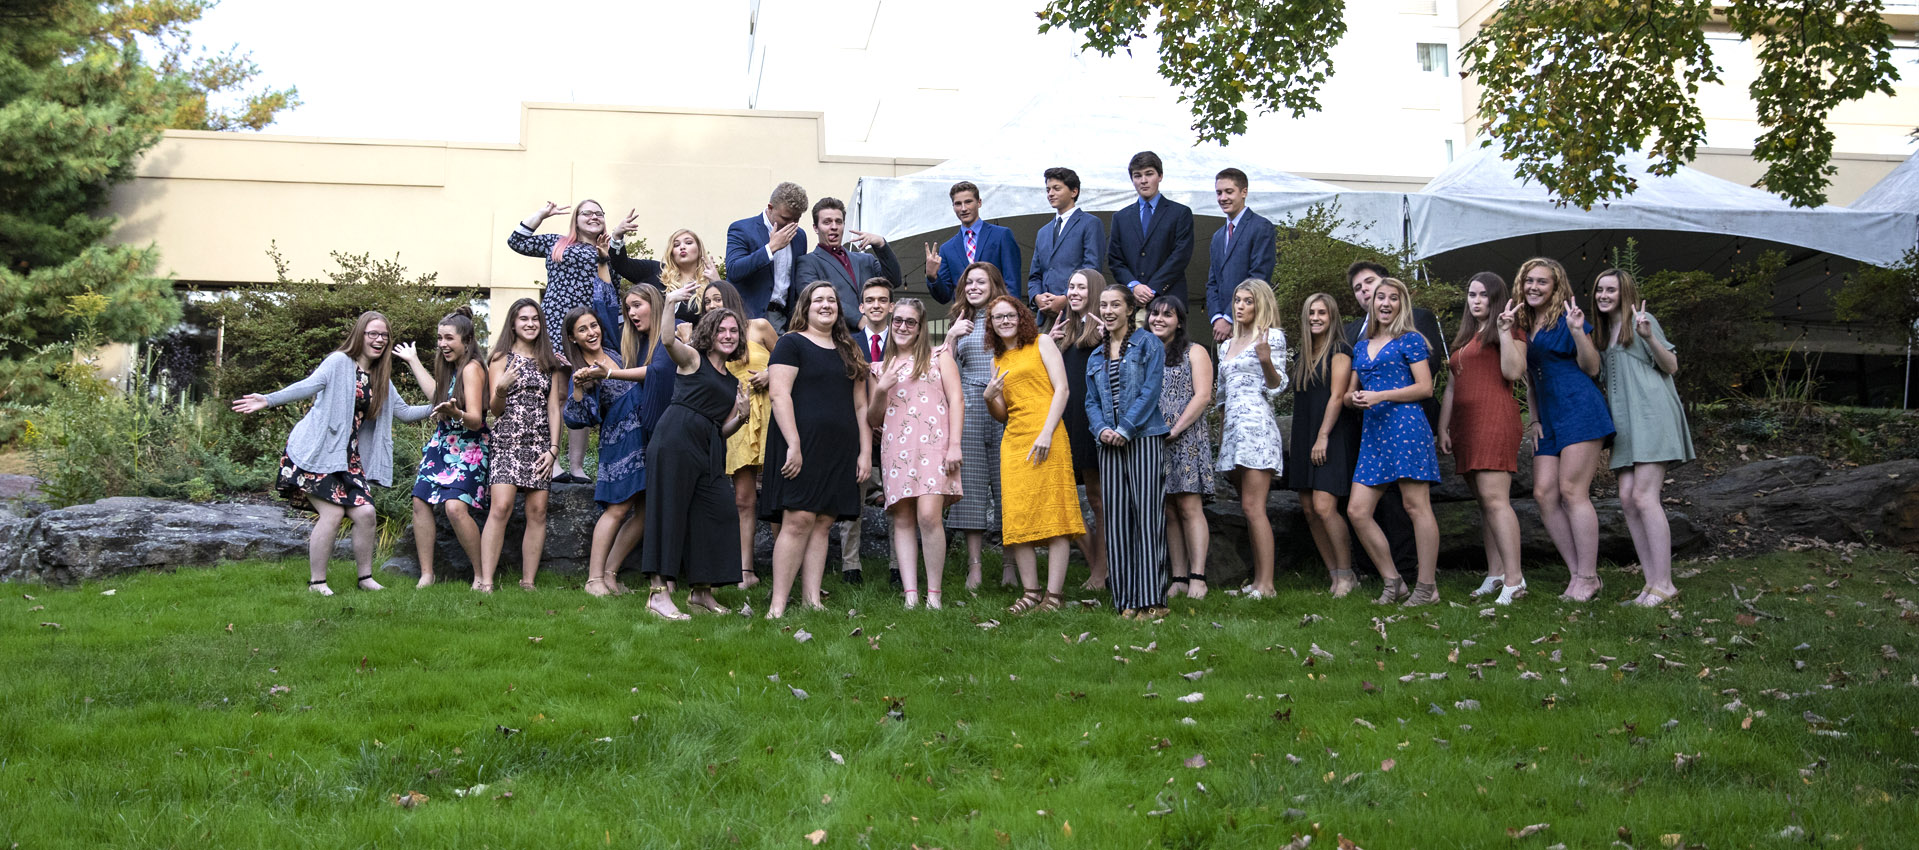 Luzerne Foundation's Youth Advisory Committee Awards $15K to Charities